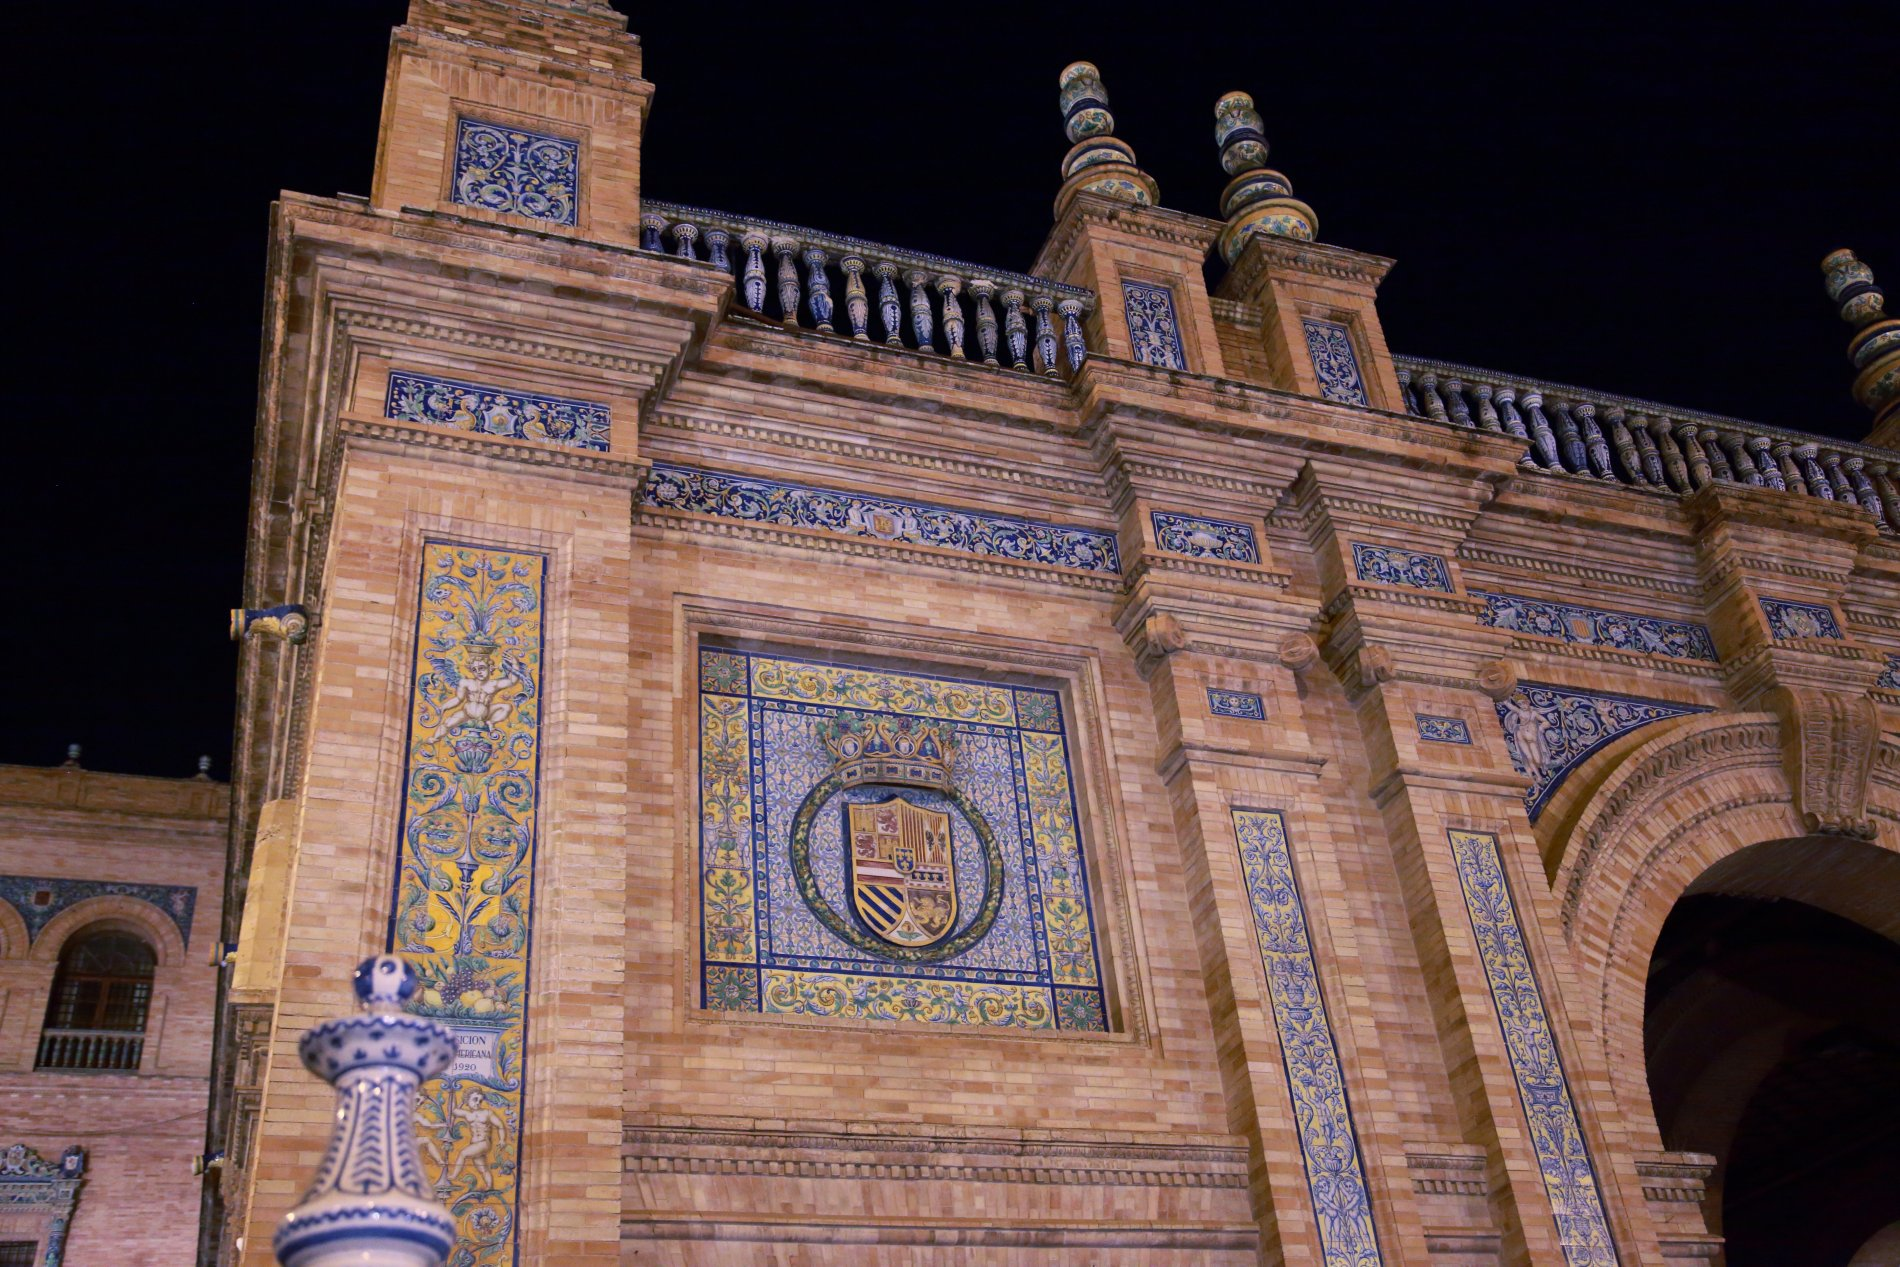 Seville-92.JPG-commment